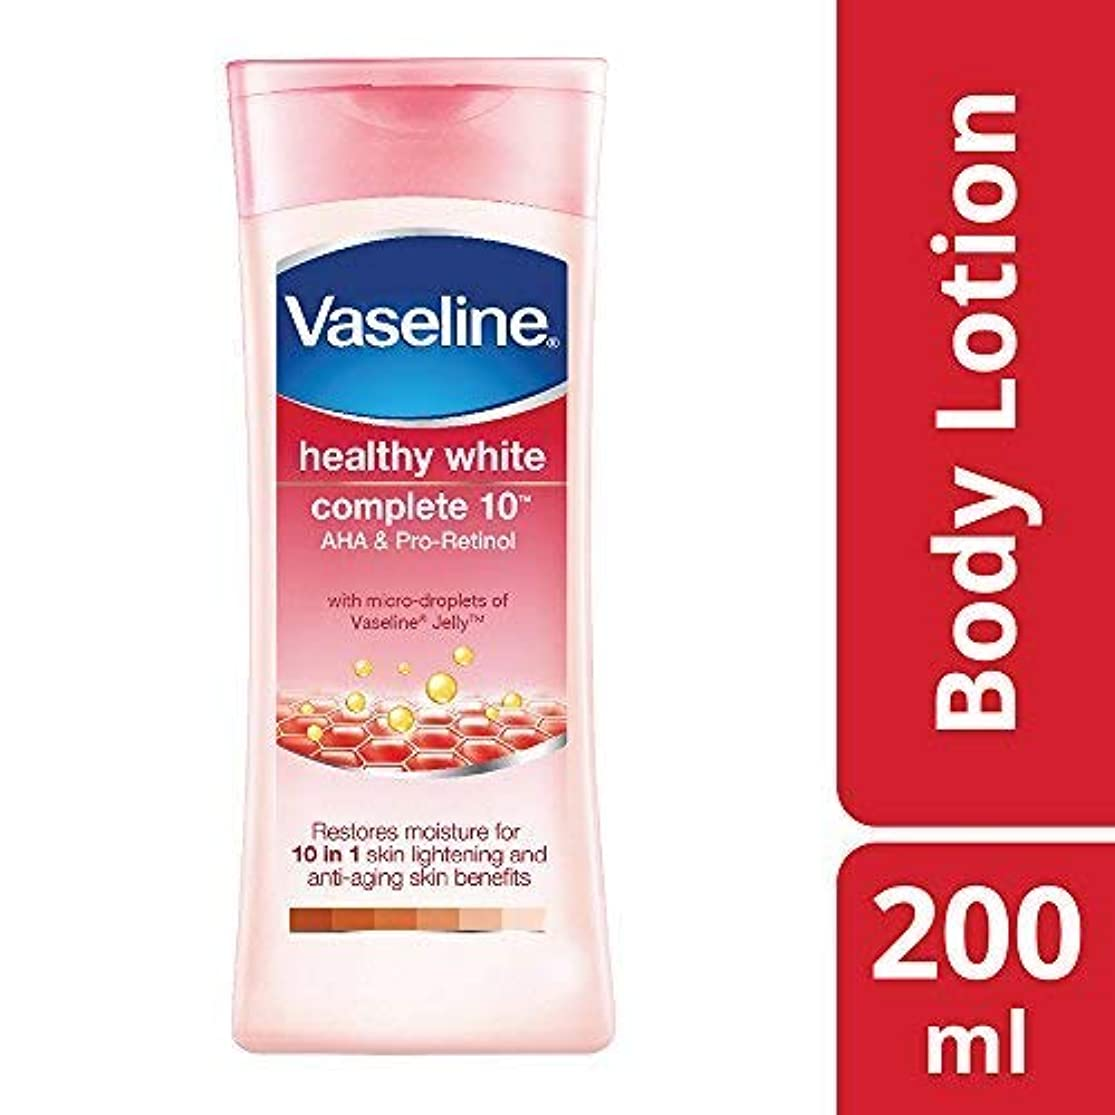 粒子ライム倒錯Vaseline Healthy White Complete 10 AHA and Pro Retinol, 200ml